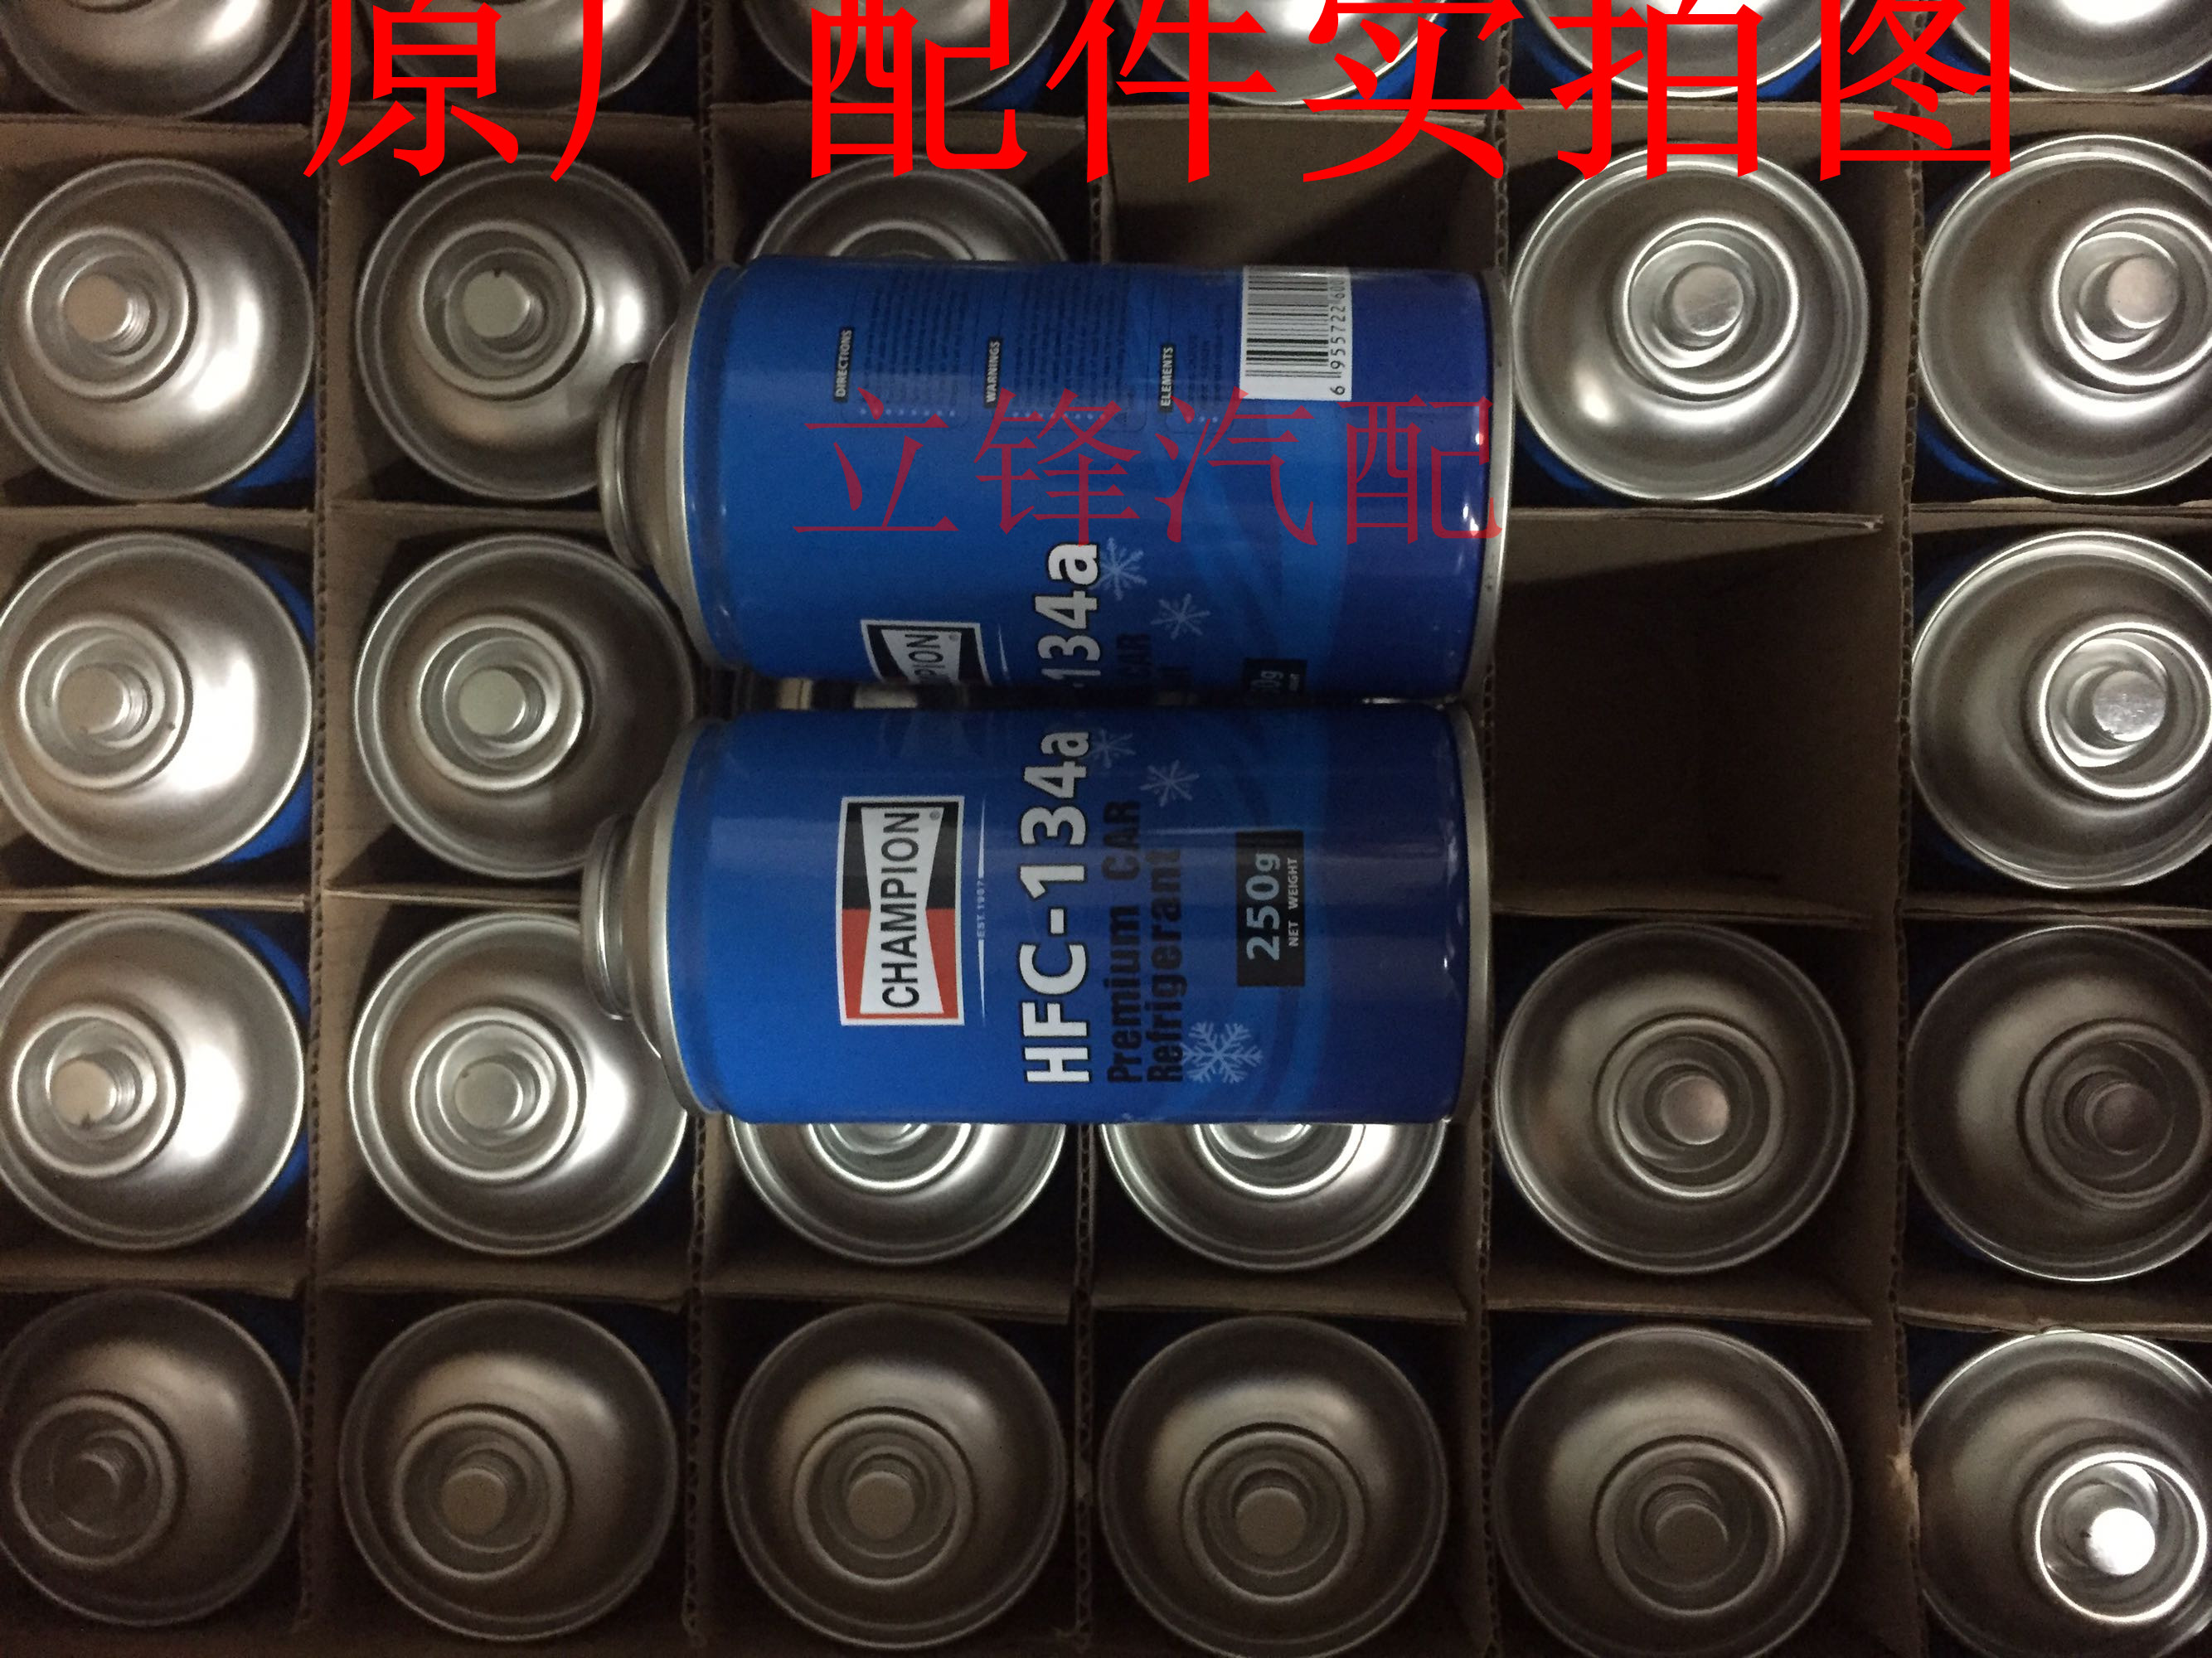 Auto door air conditioning refrigerant, snow seed R134a vehicle refrigerant, freon free HFC refrigeration liquid environmental protection type